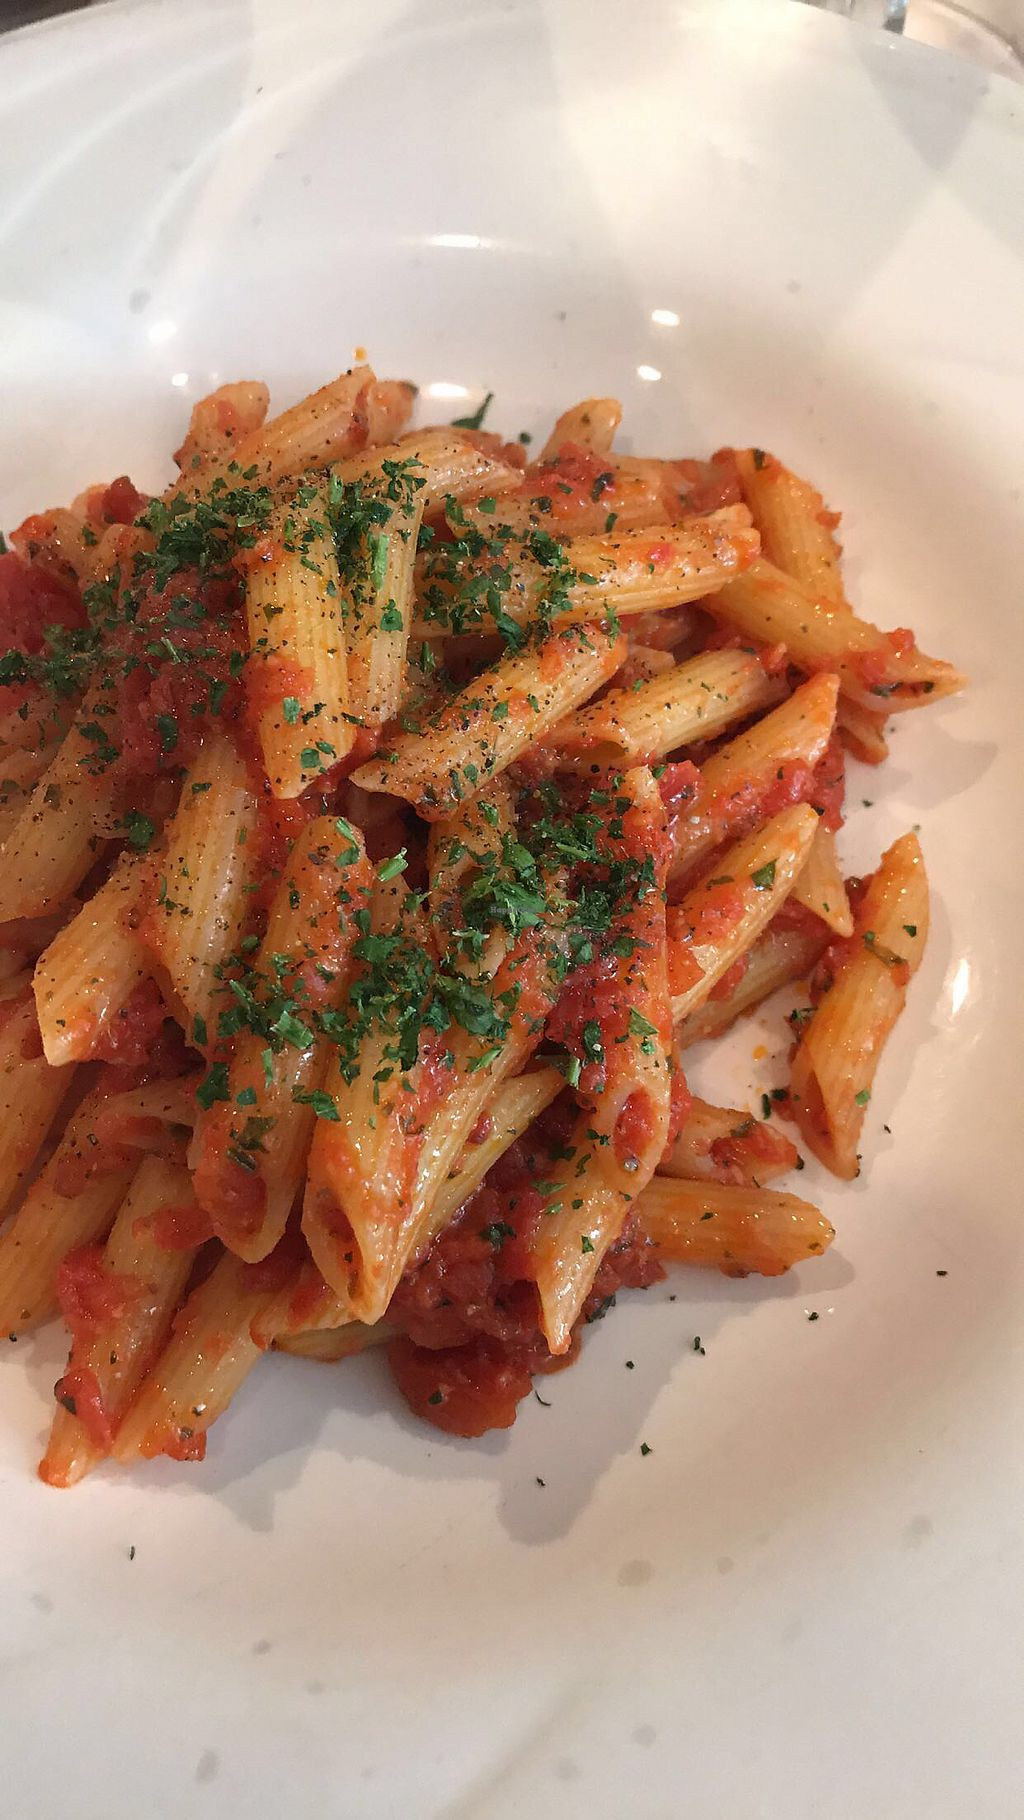 """Photo of Ristorante Lucia  by <a href=""""/members/profile/amandadonahue"""">amandadonahue</a> <br/>Yummy pasta! <br/> May 14, 2018  - <a href='/contact/abuse/image/22973/399686'>Report</a>"""